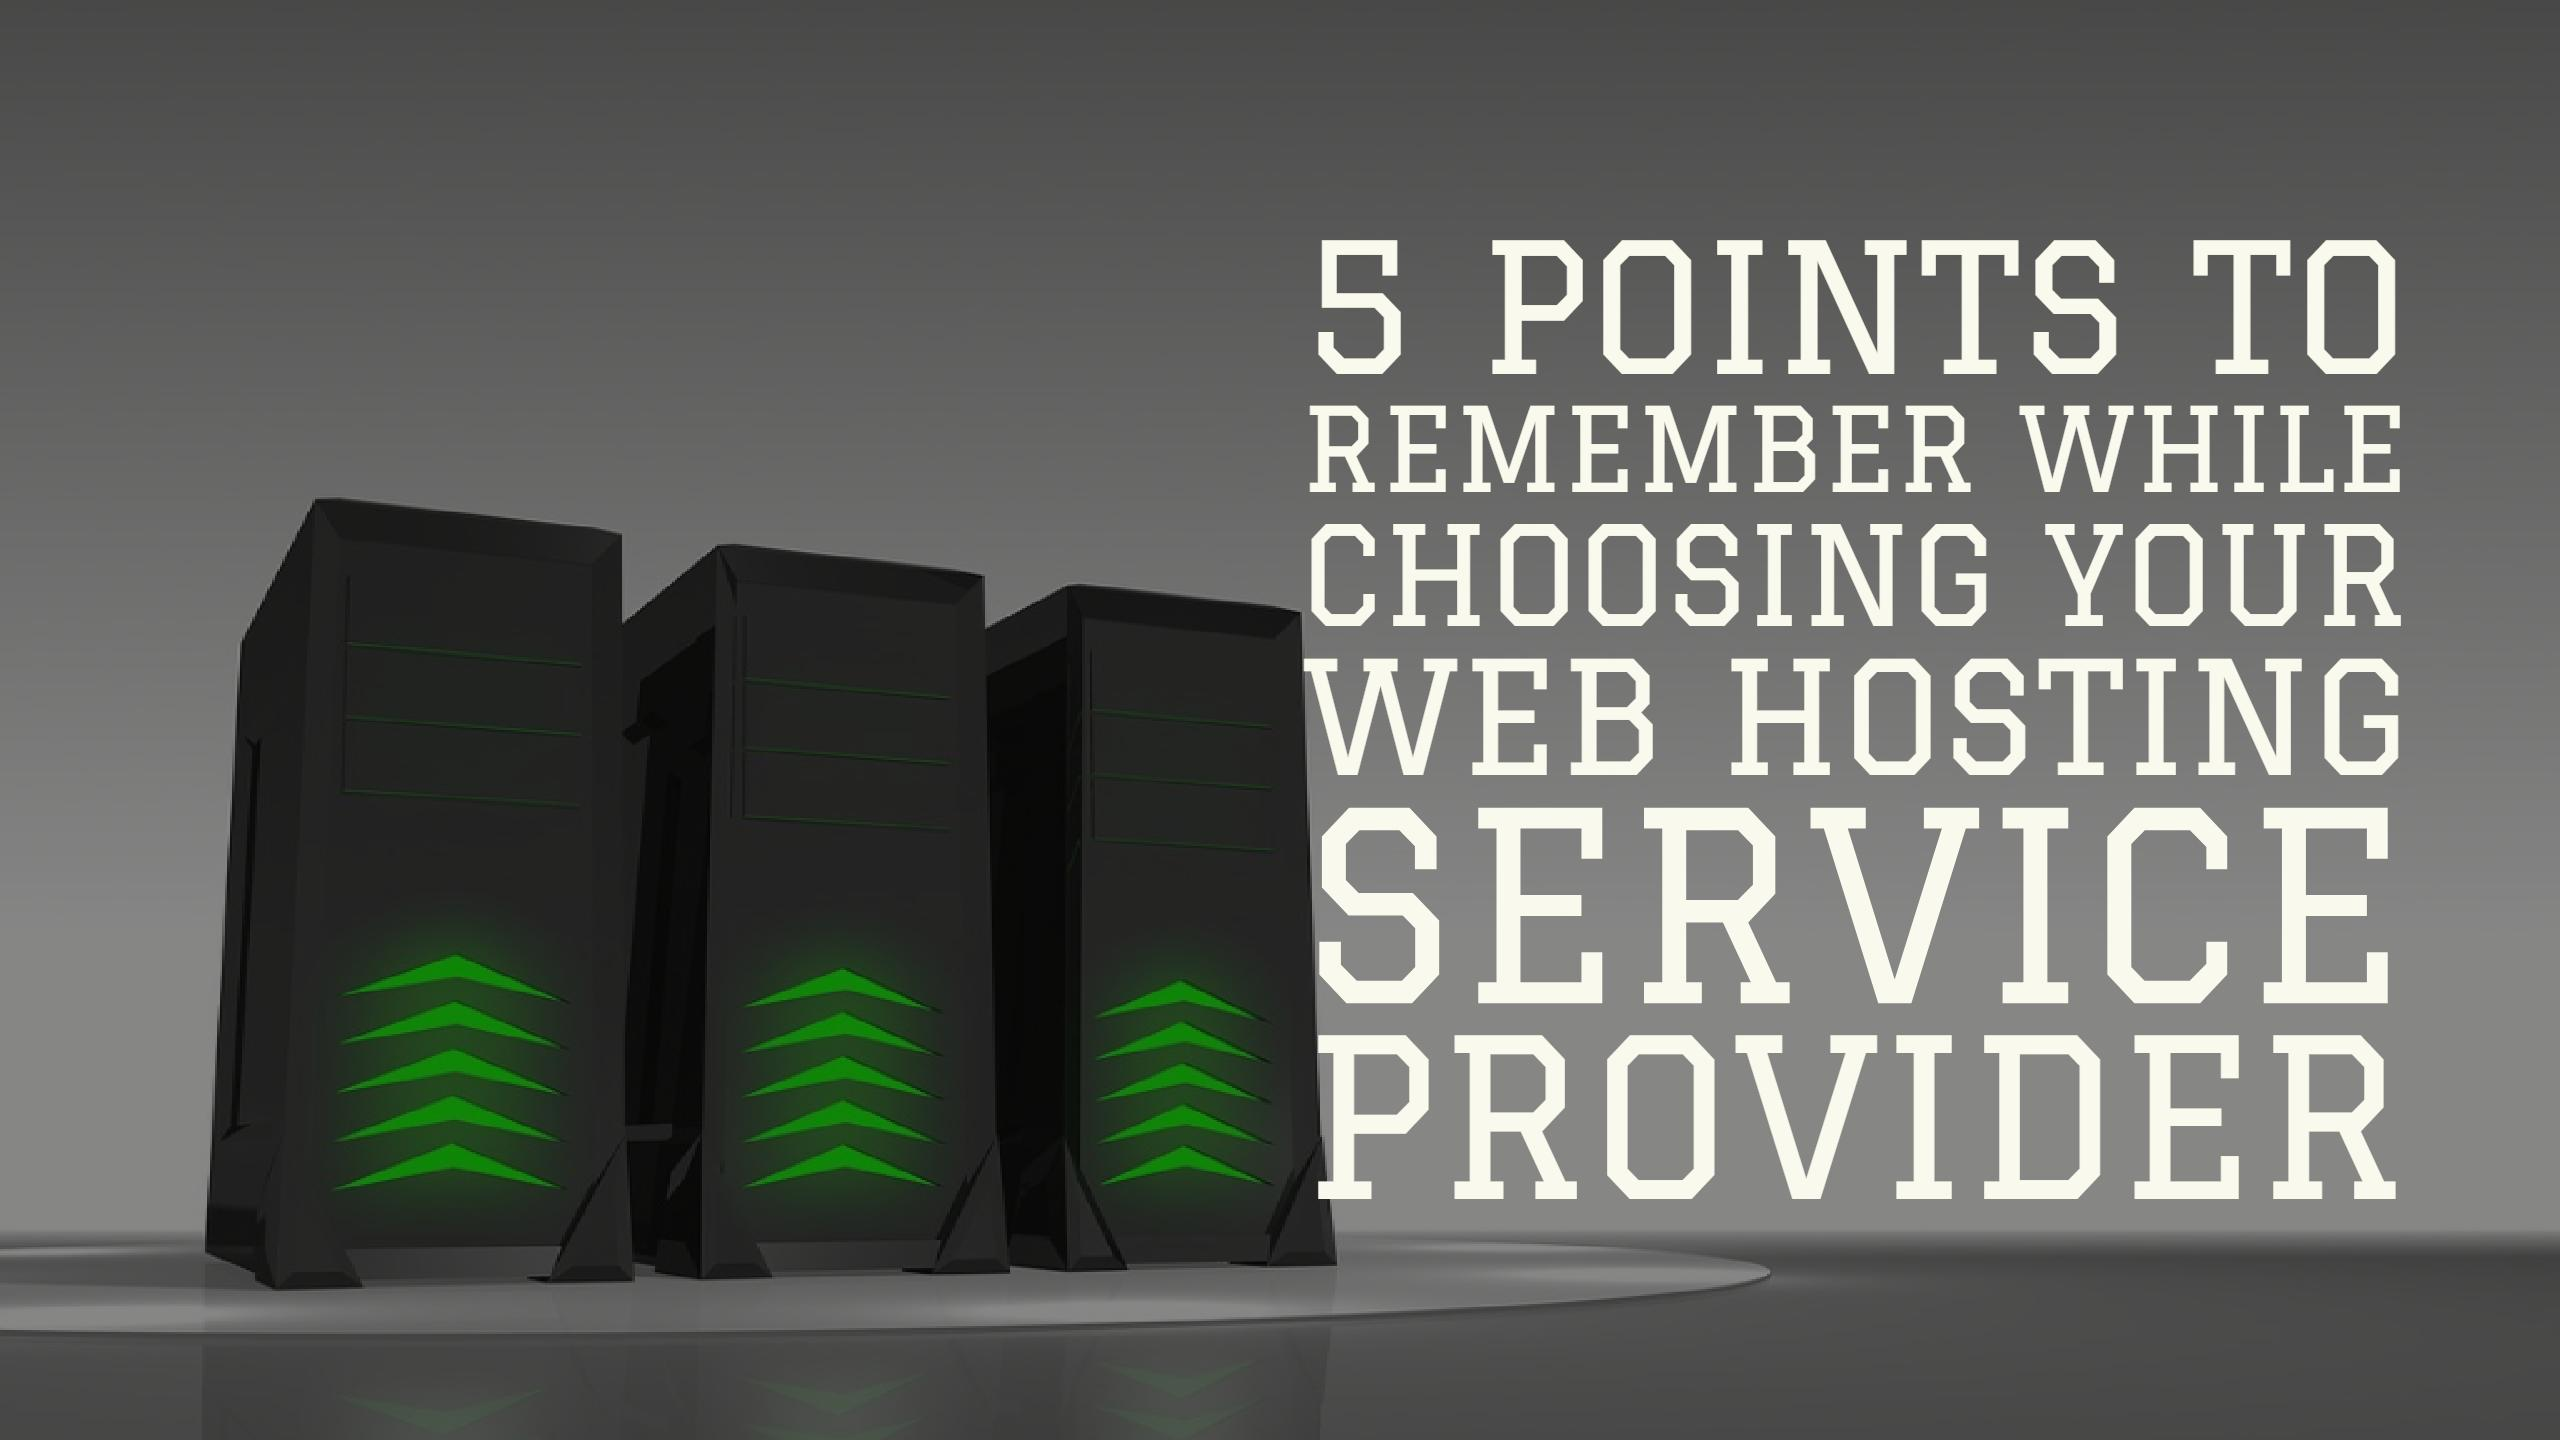 5 Points to remember while choosing your web hosting service provider